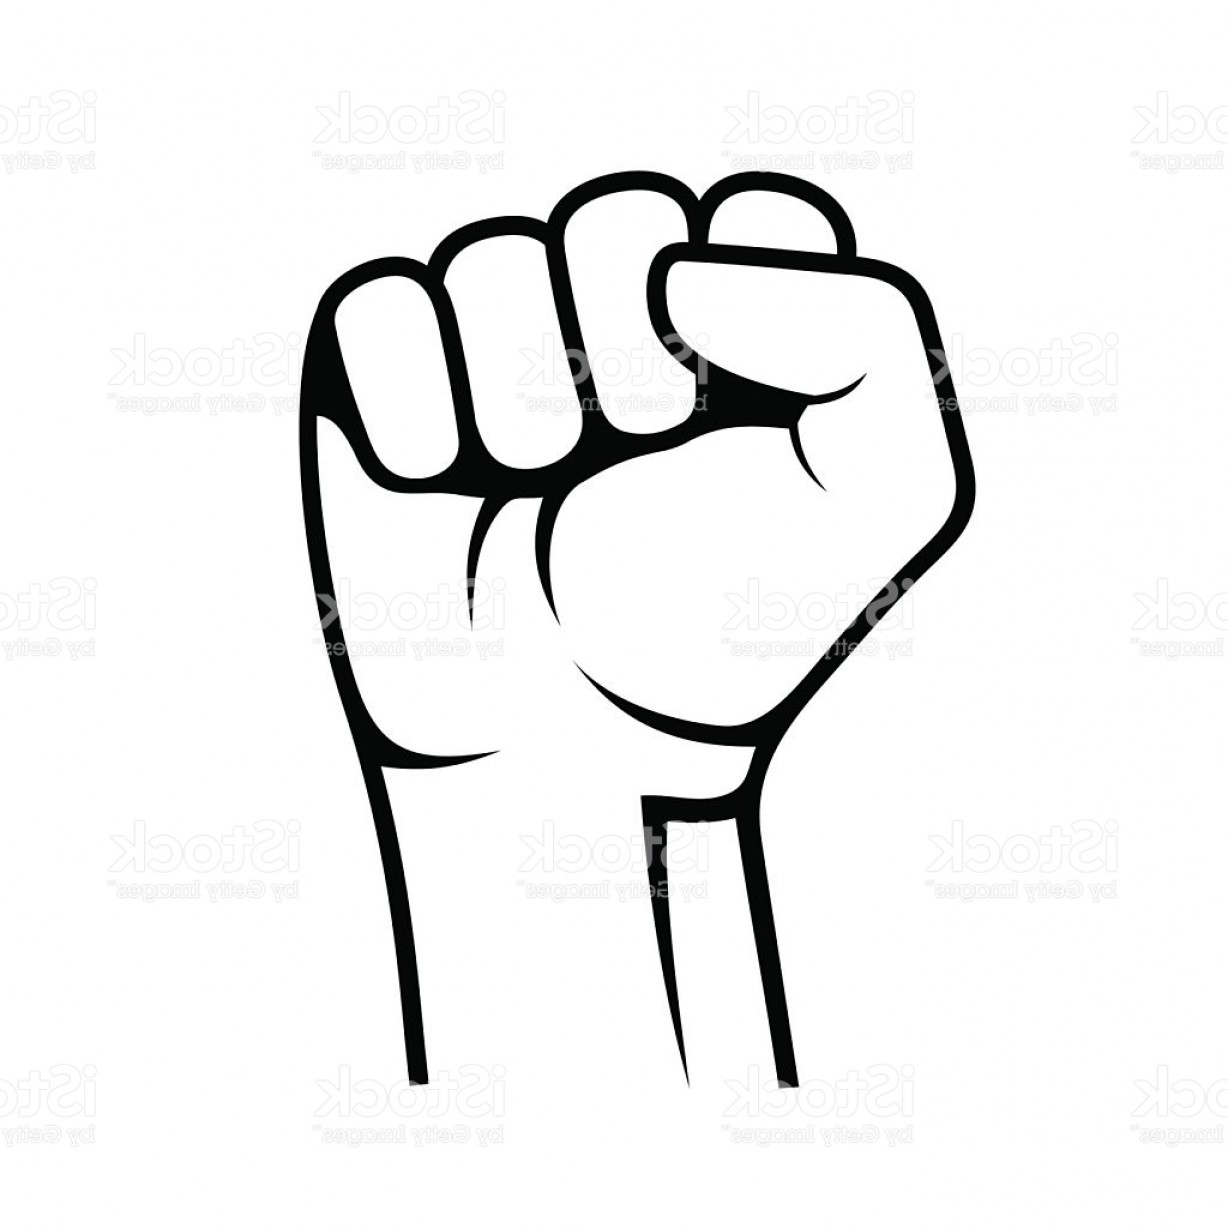 Emoji Fist Bump Vector Graphic: Raised Fist On White Background Vector Gm